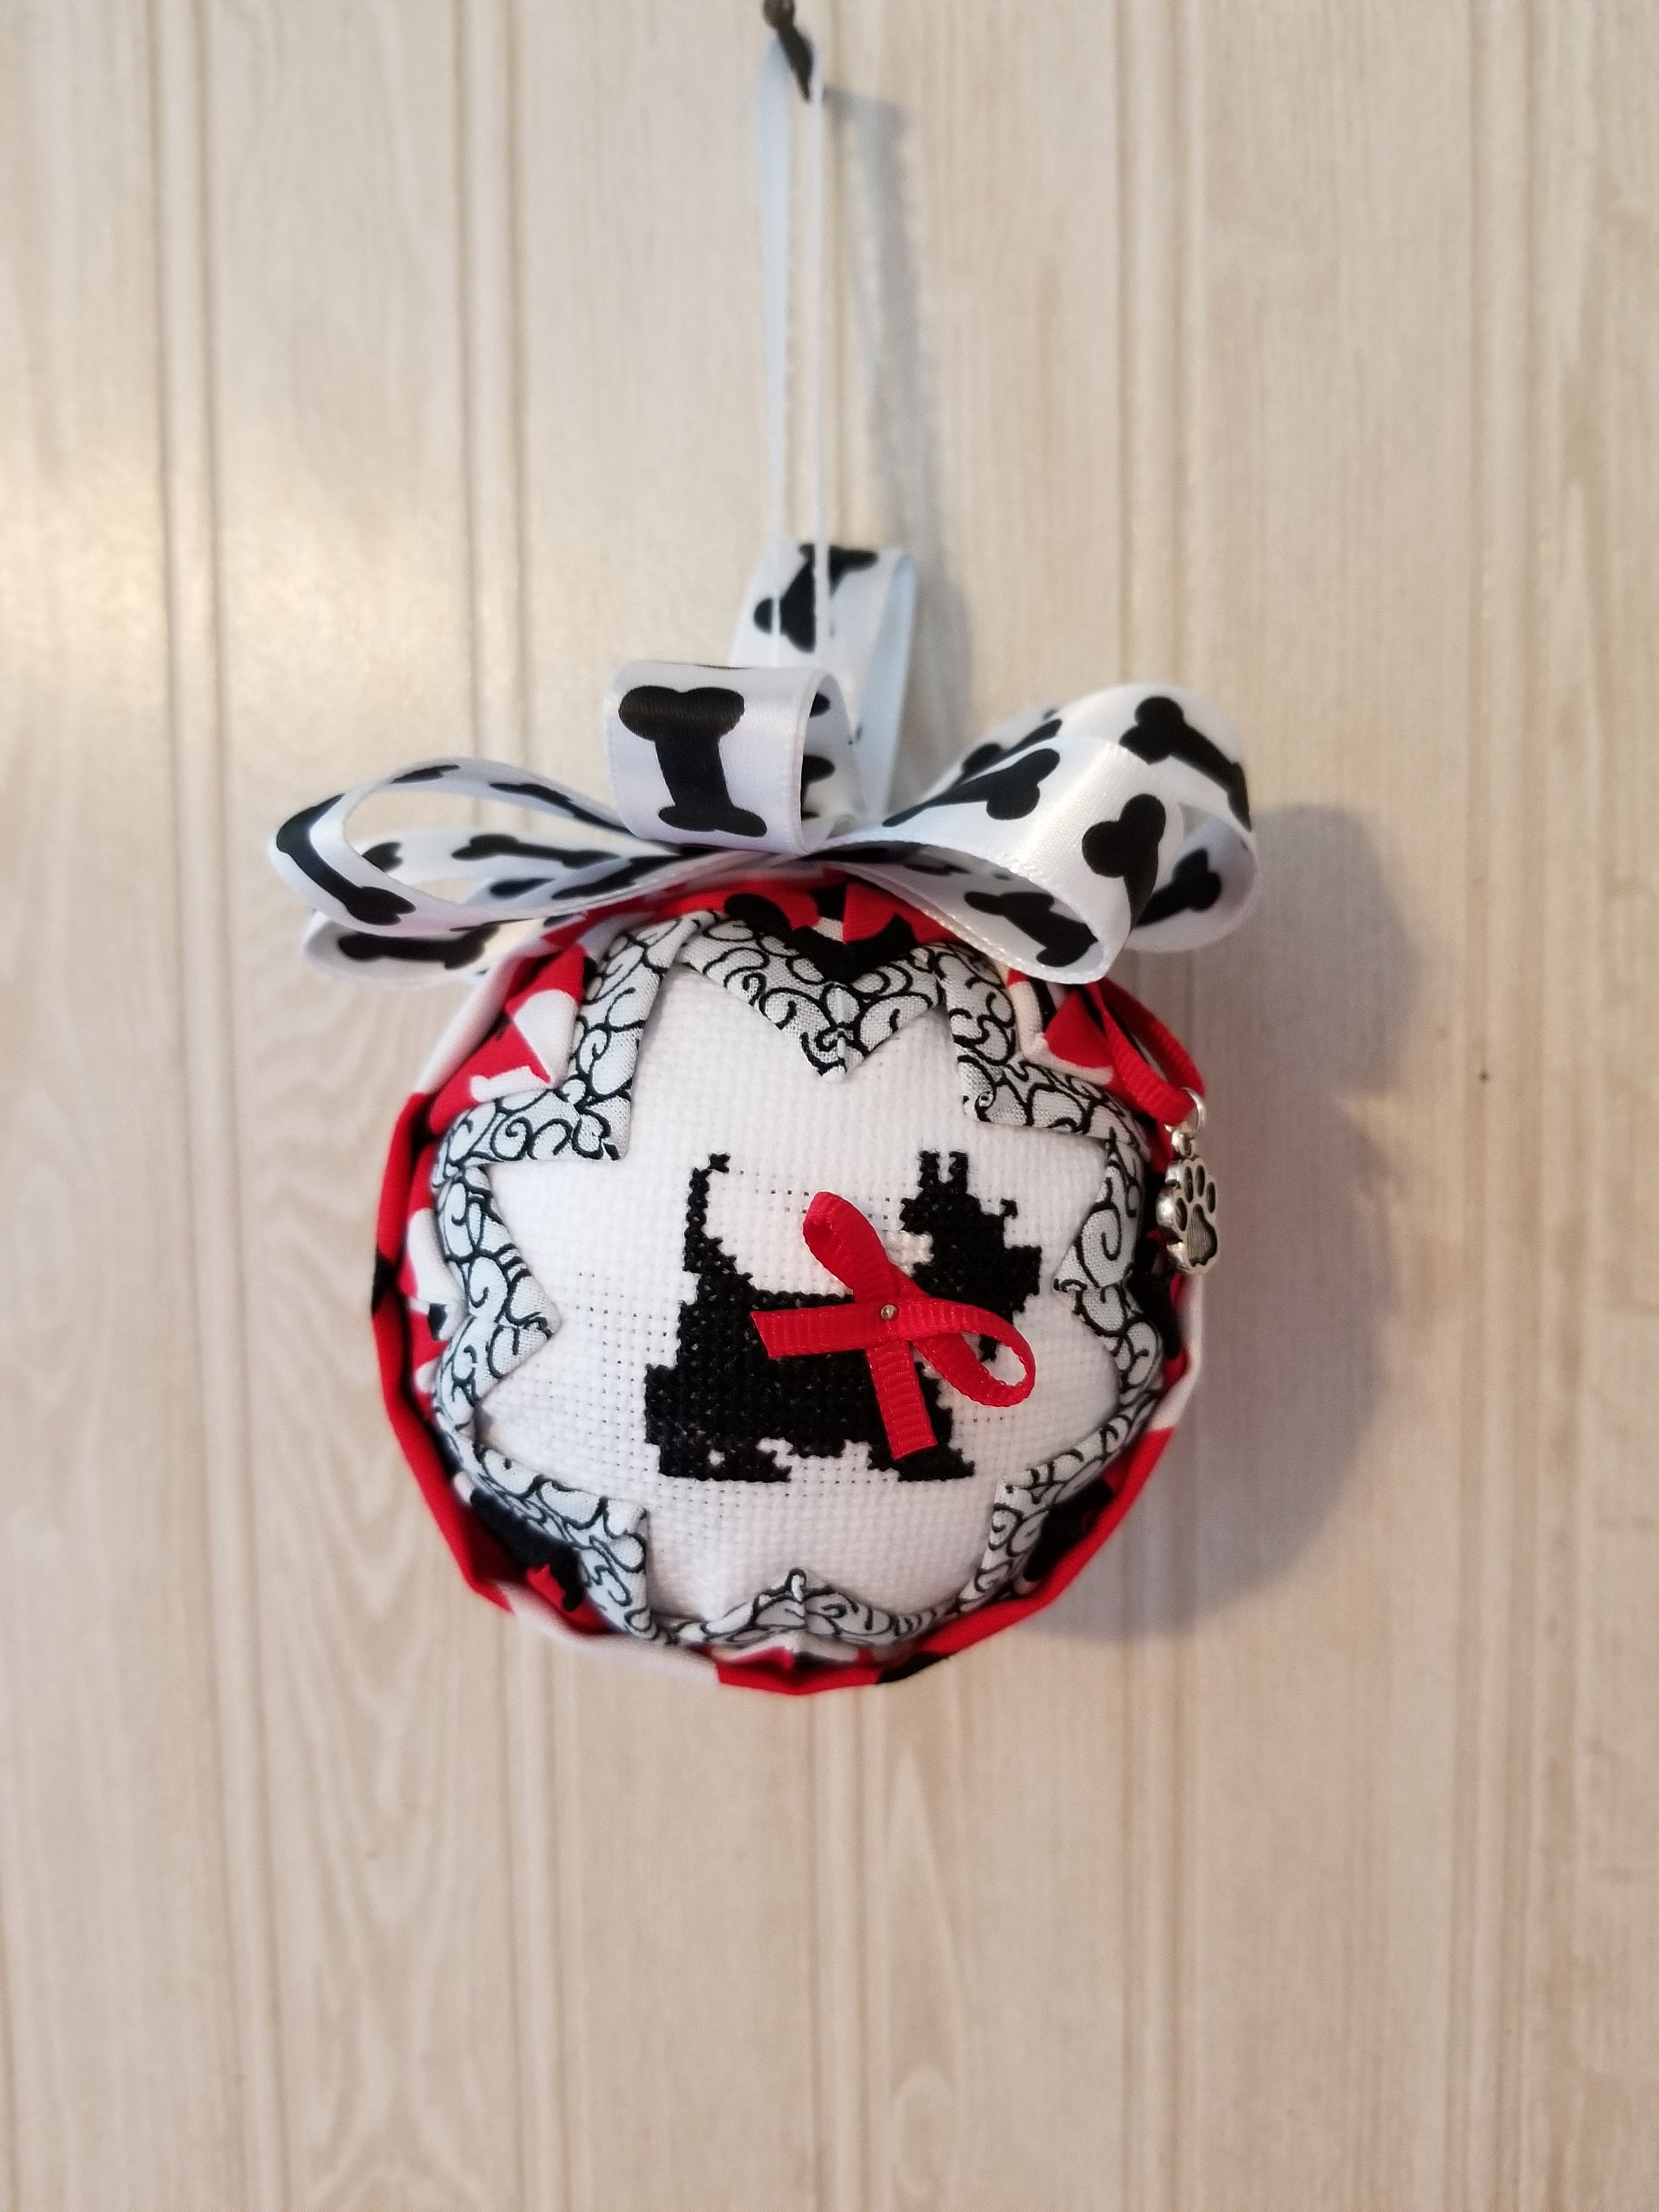 Scottish Terrier Dog Hand-stitched Fabric Ornament